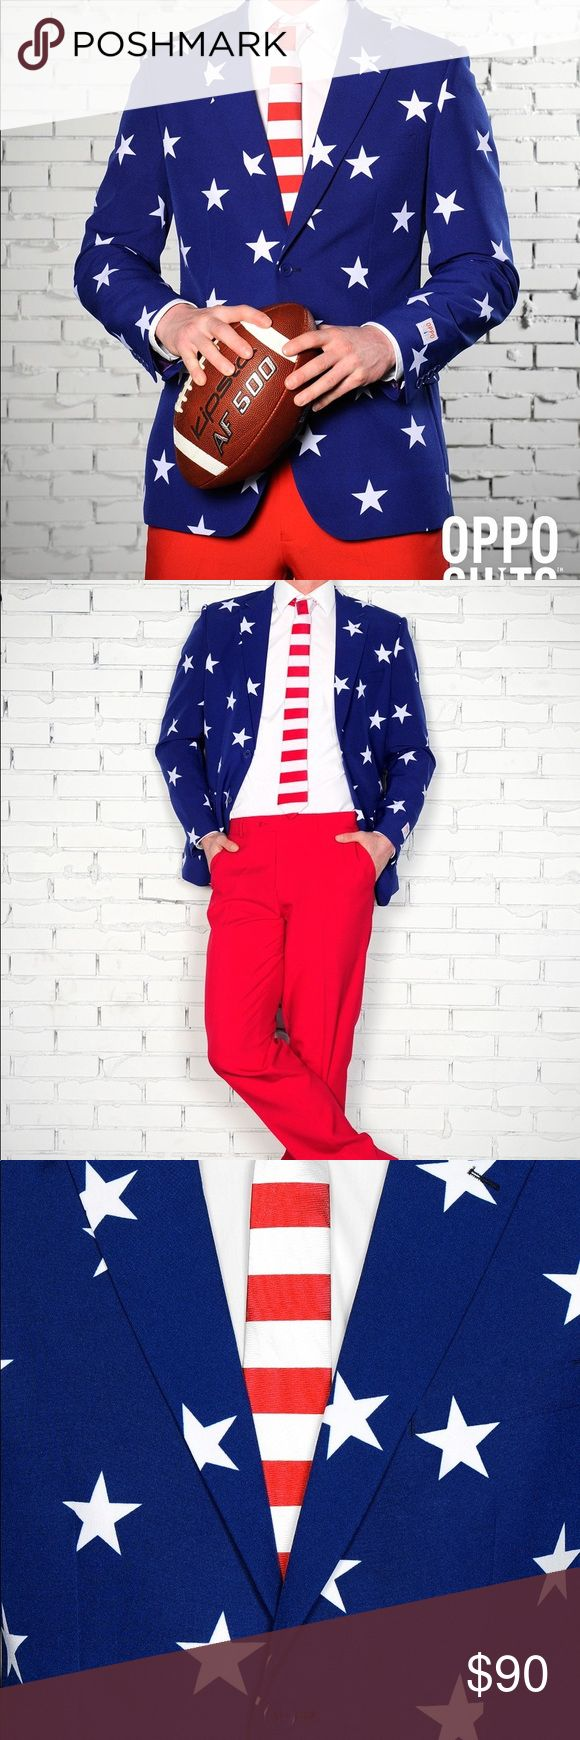 American flag suit - Halloween Blue blazer with white stars (EU54/UK 44/US 44) and red pants (EU54/UK 44/US 44) and white and red tie OppoSuits Other